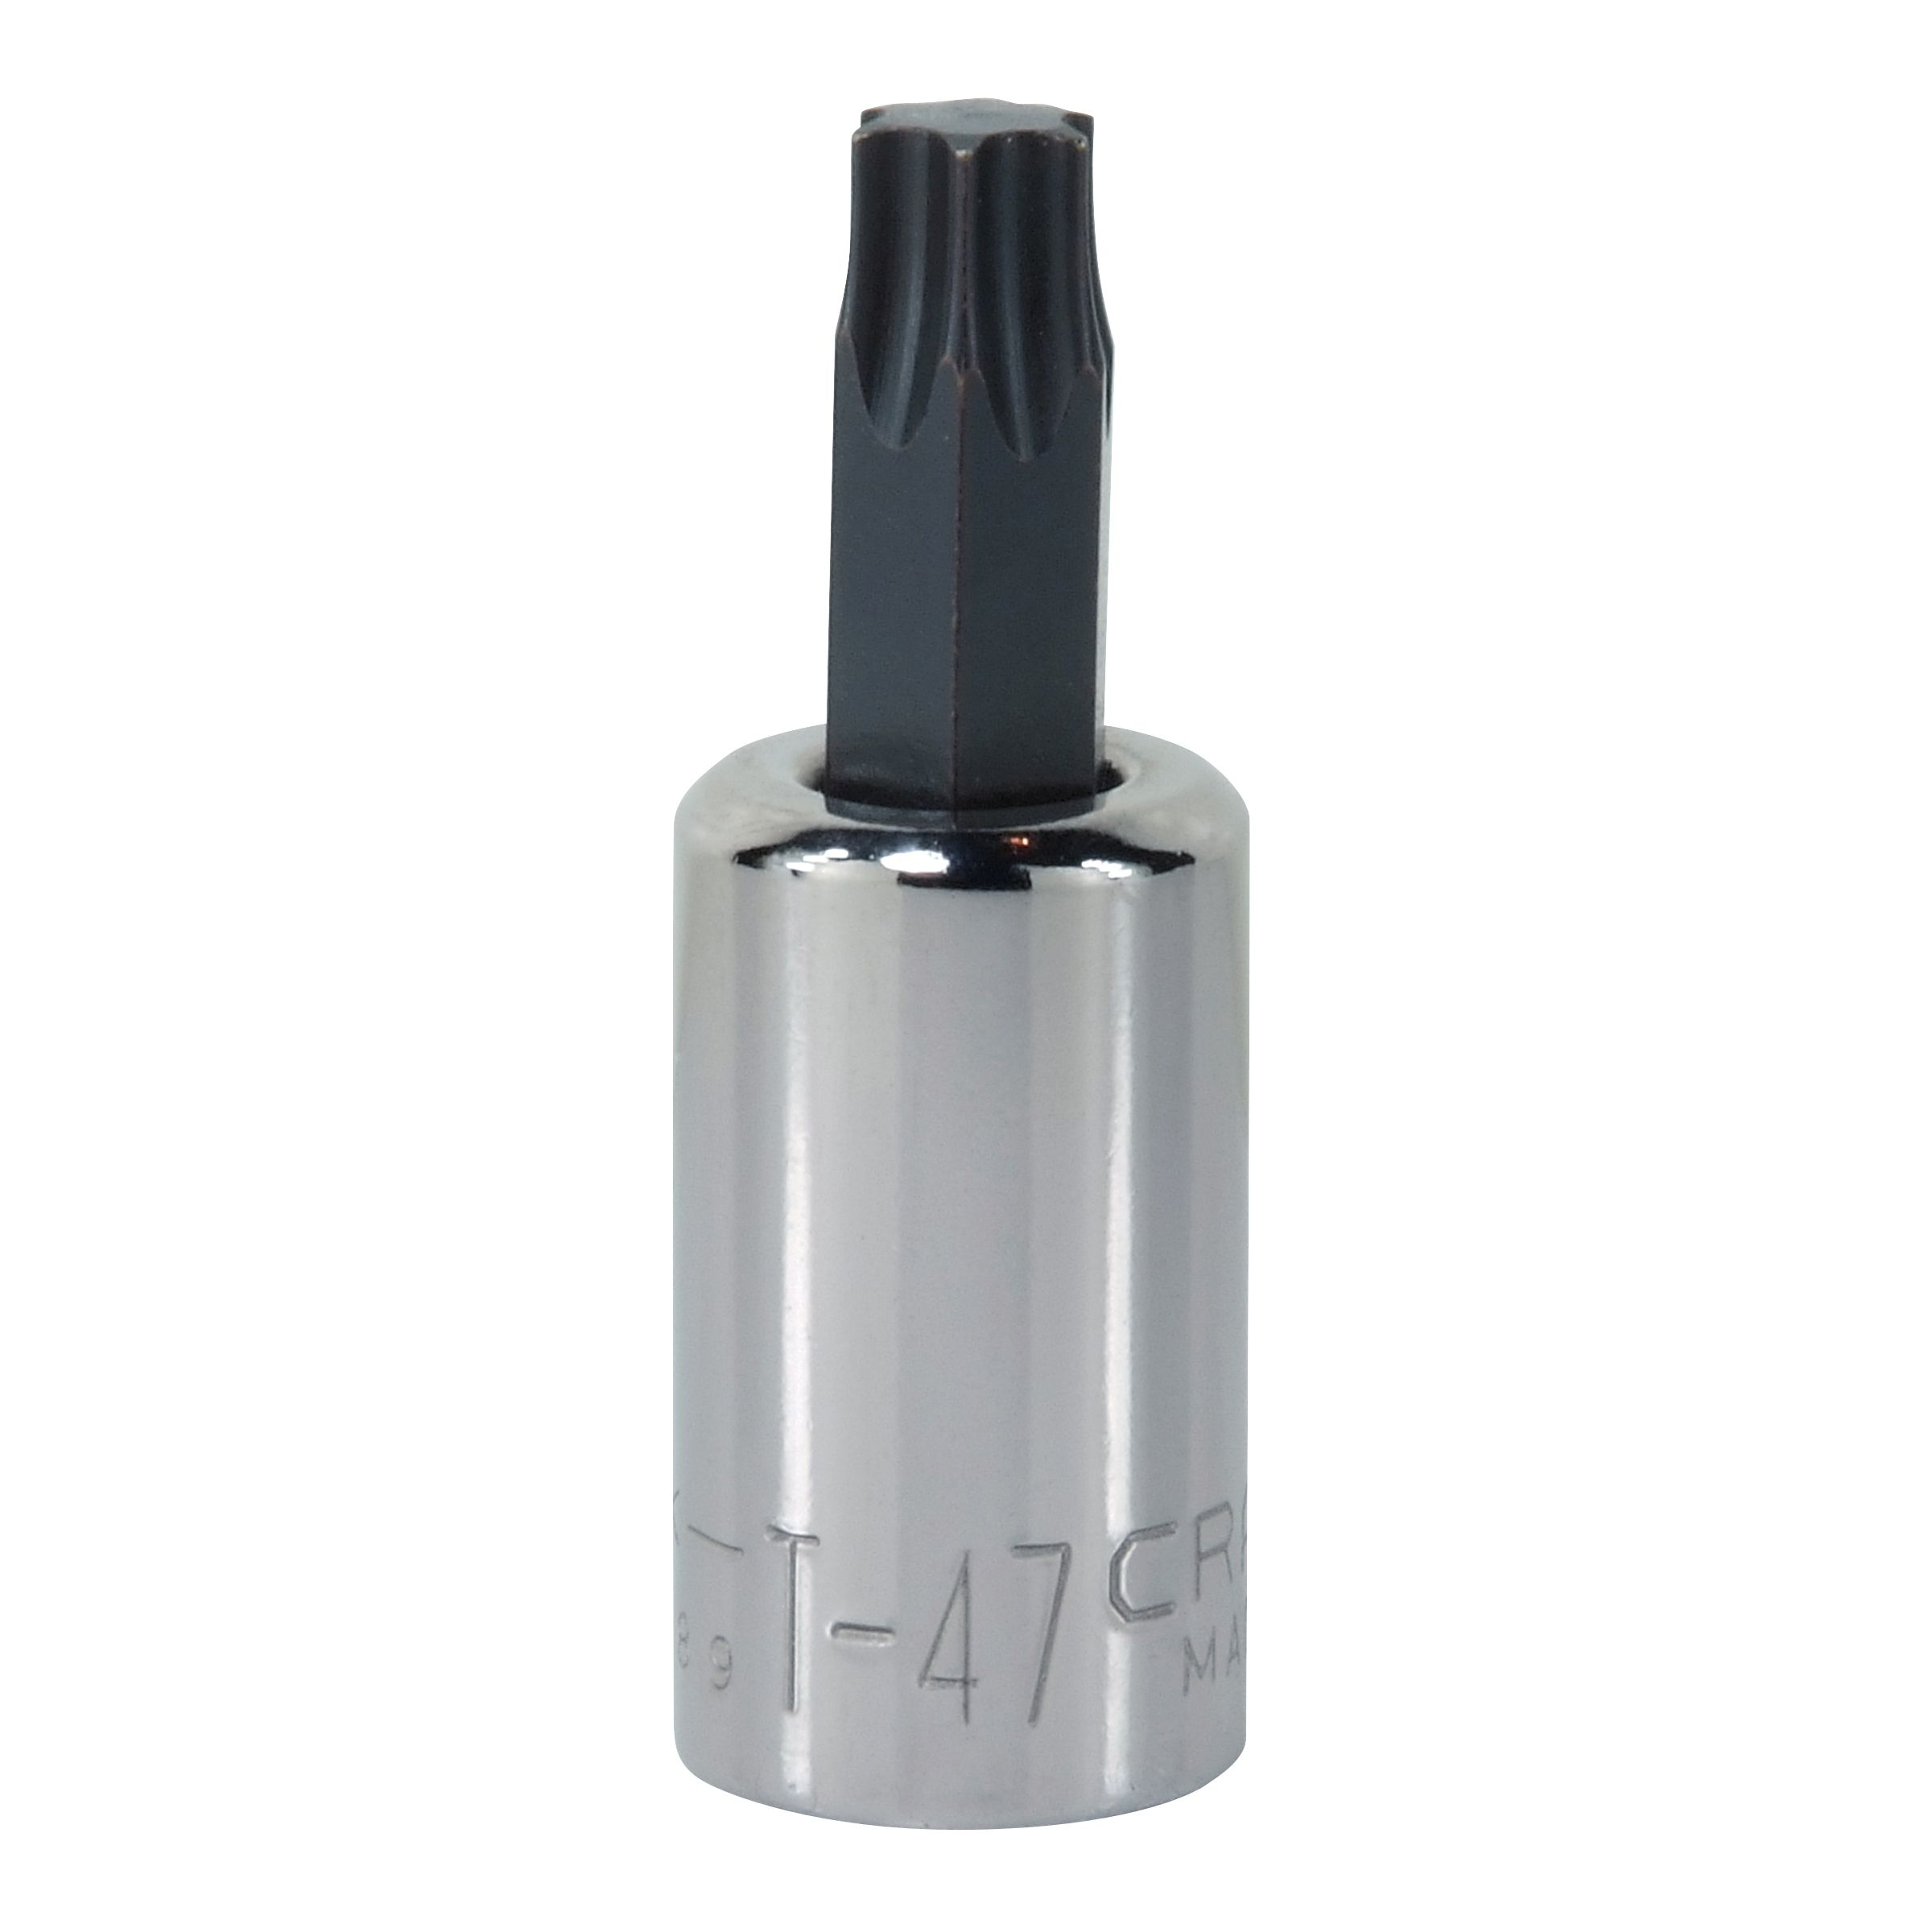 T47 Torx Bit Socket 3/8 in. Drive